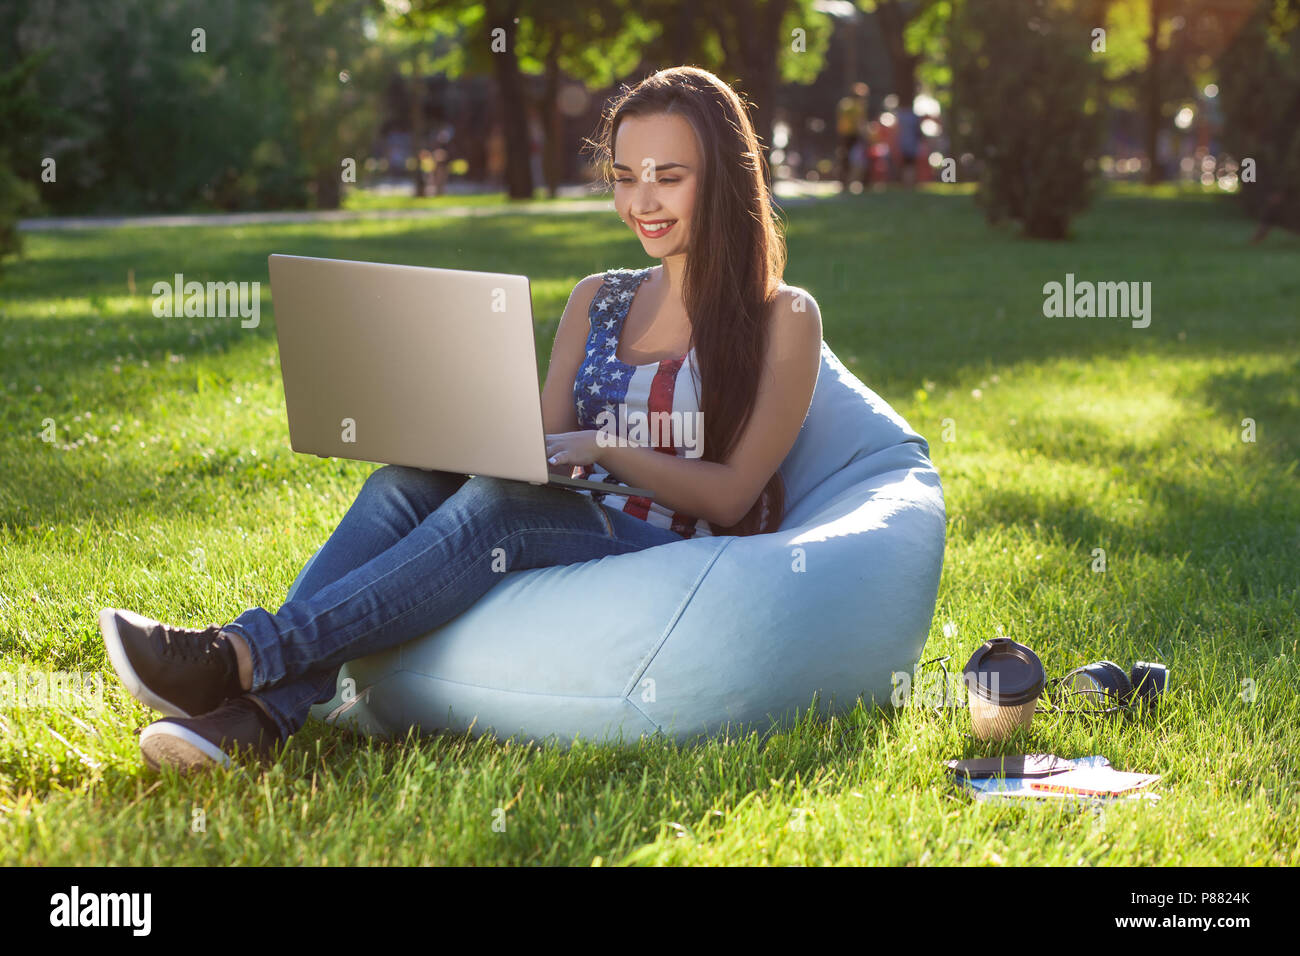 Young cute girl with laptop, sit on bean bag in garden or park, on green grass. Online shopping concept - Stock Image